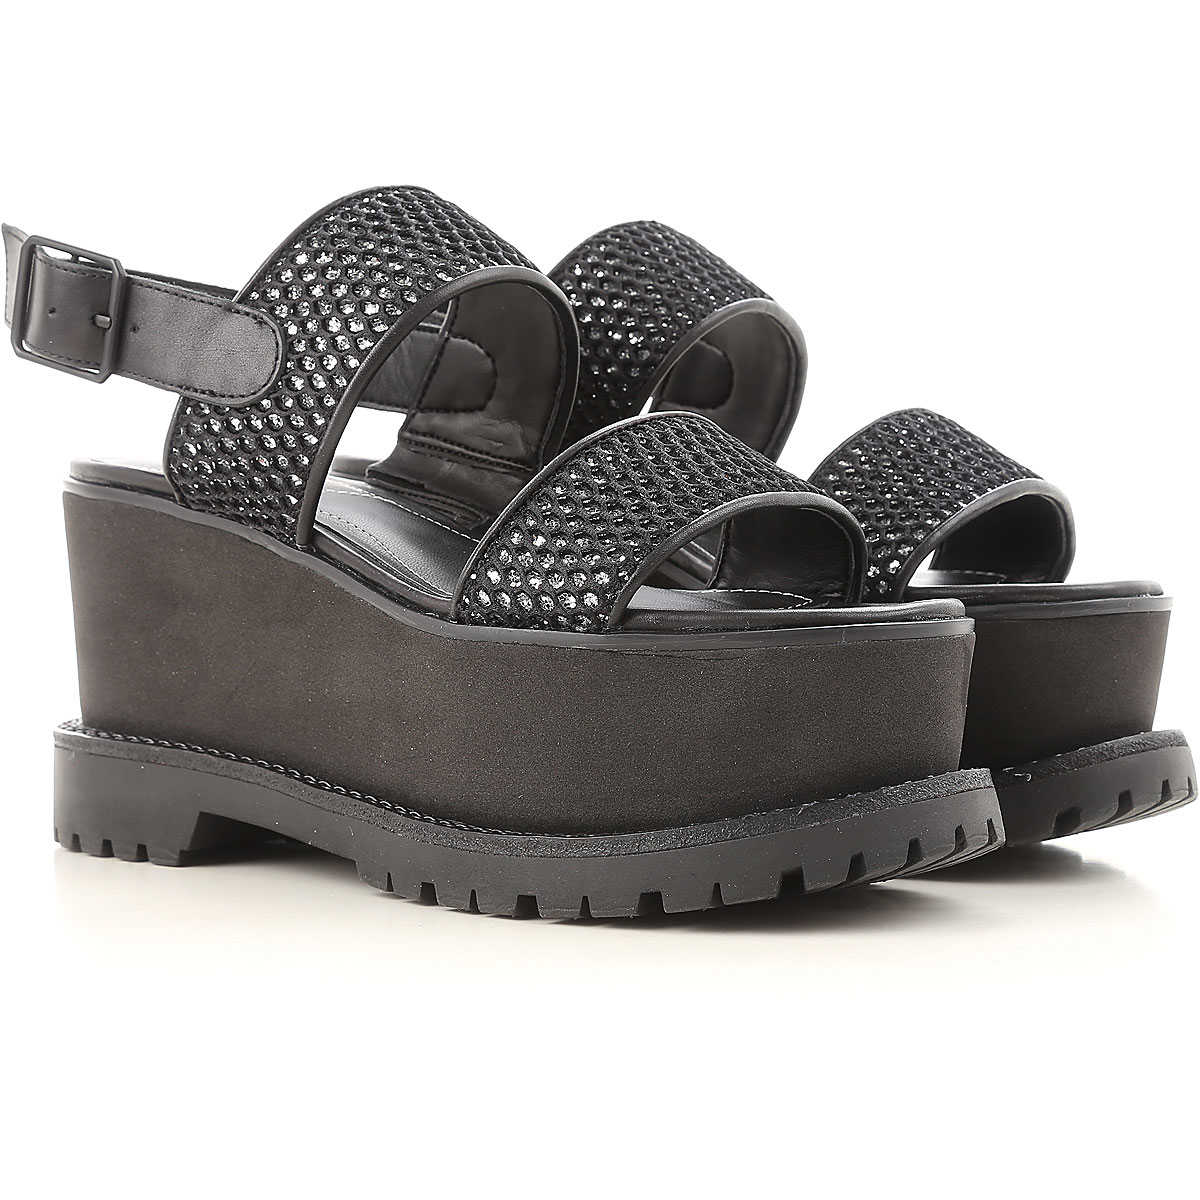 Kendall Kylie Wedges for Women On Sale in Outlet Black SE - GOOFASH